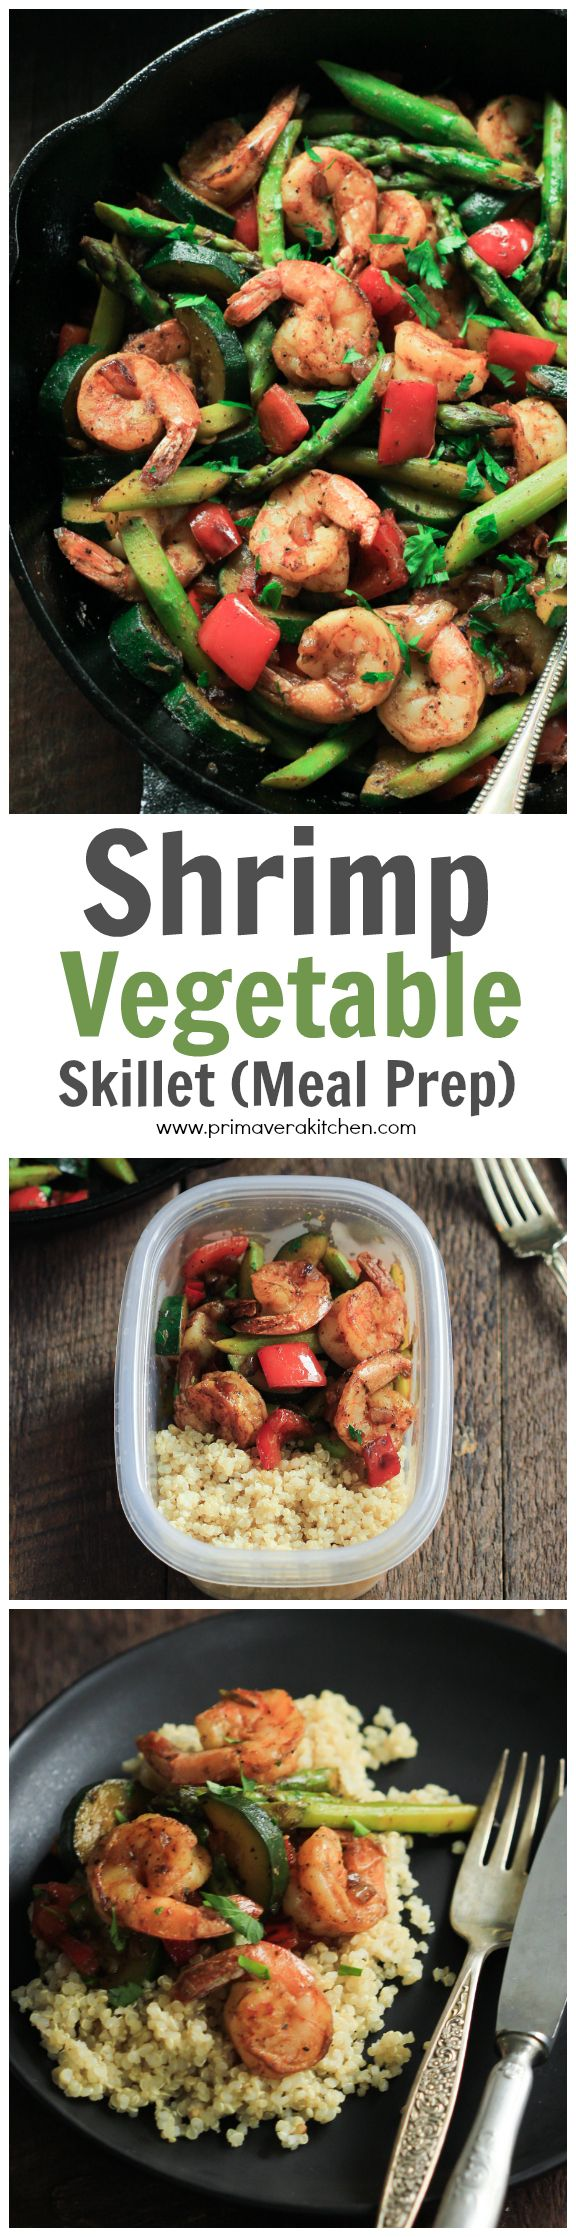 This ultra-easy Shrimp Vegetable Skillet recipe is loaded with veggies, flavorful spices and shrimp. It's a low-carb,